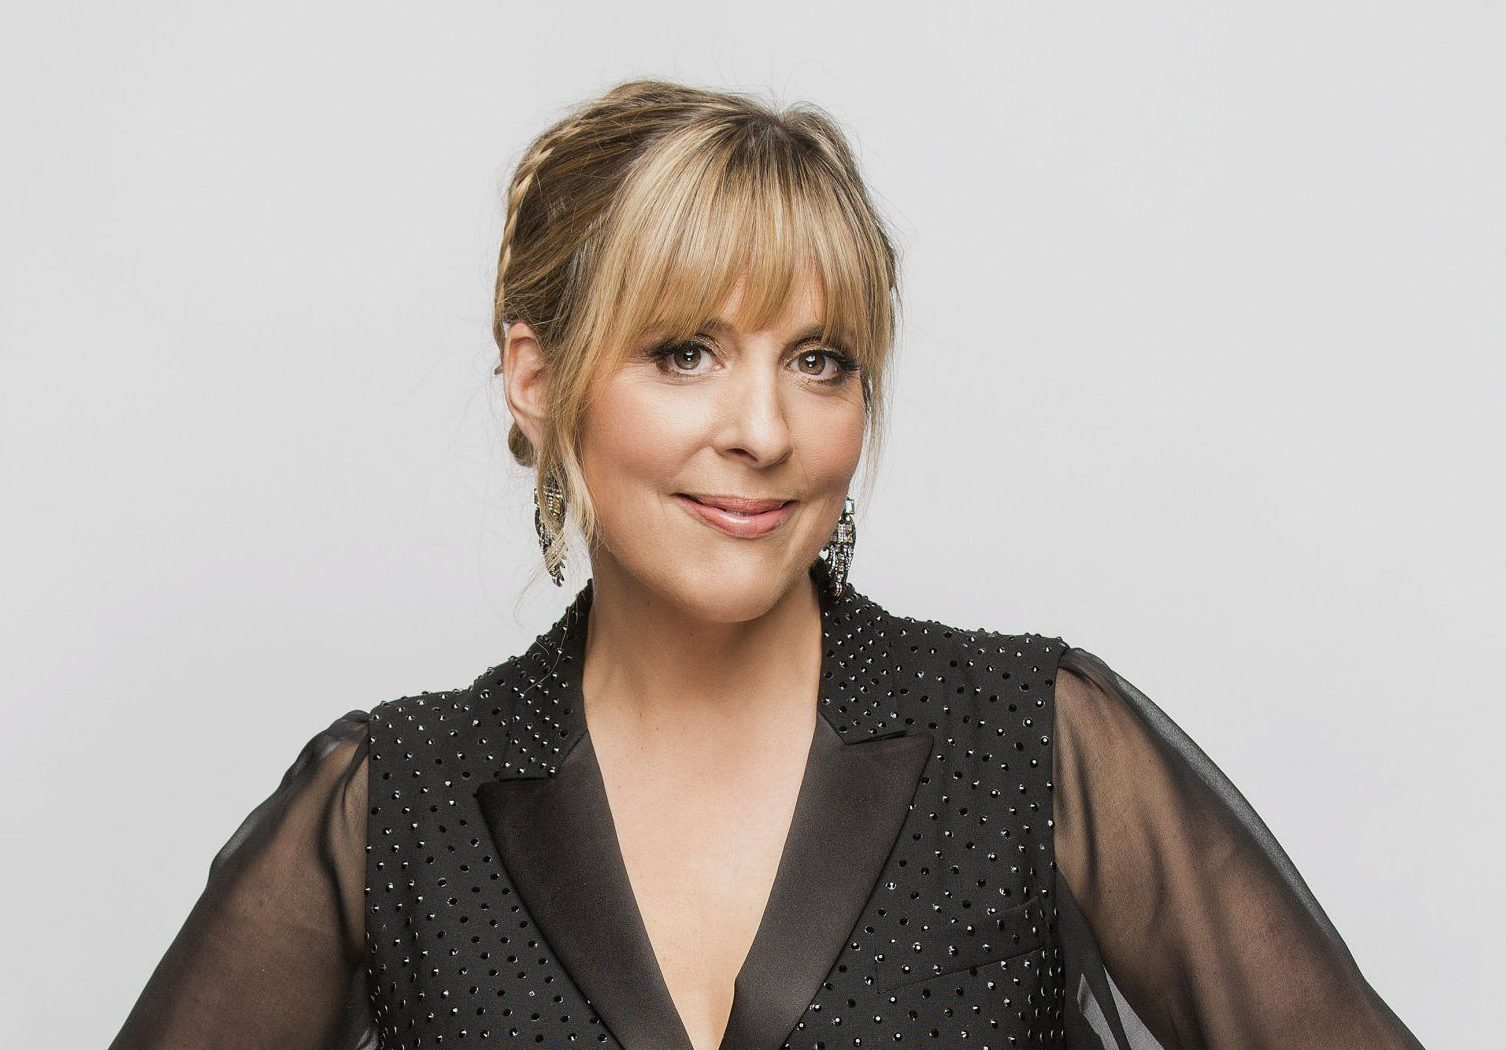 Mel Giedroyc age, husband, children and career from Bake Off to The Generation Game